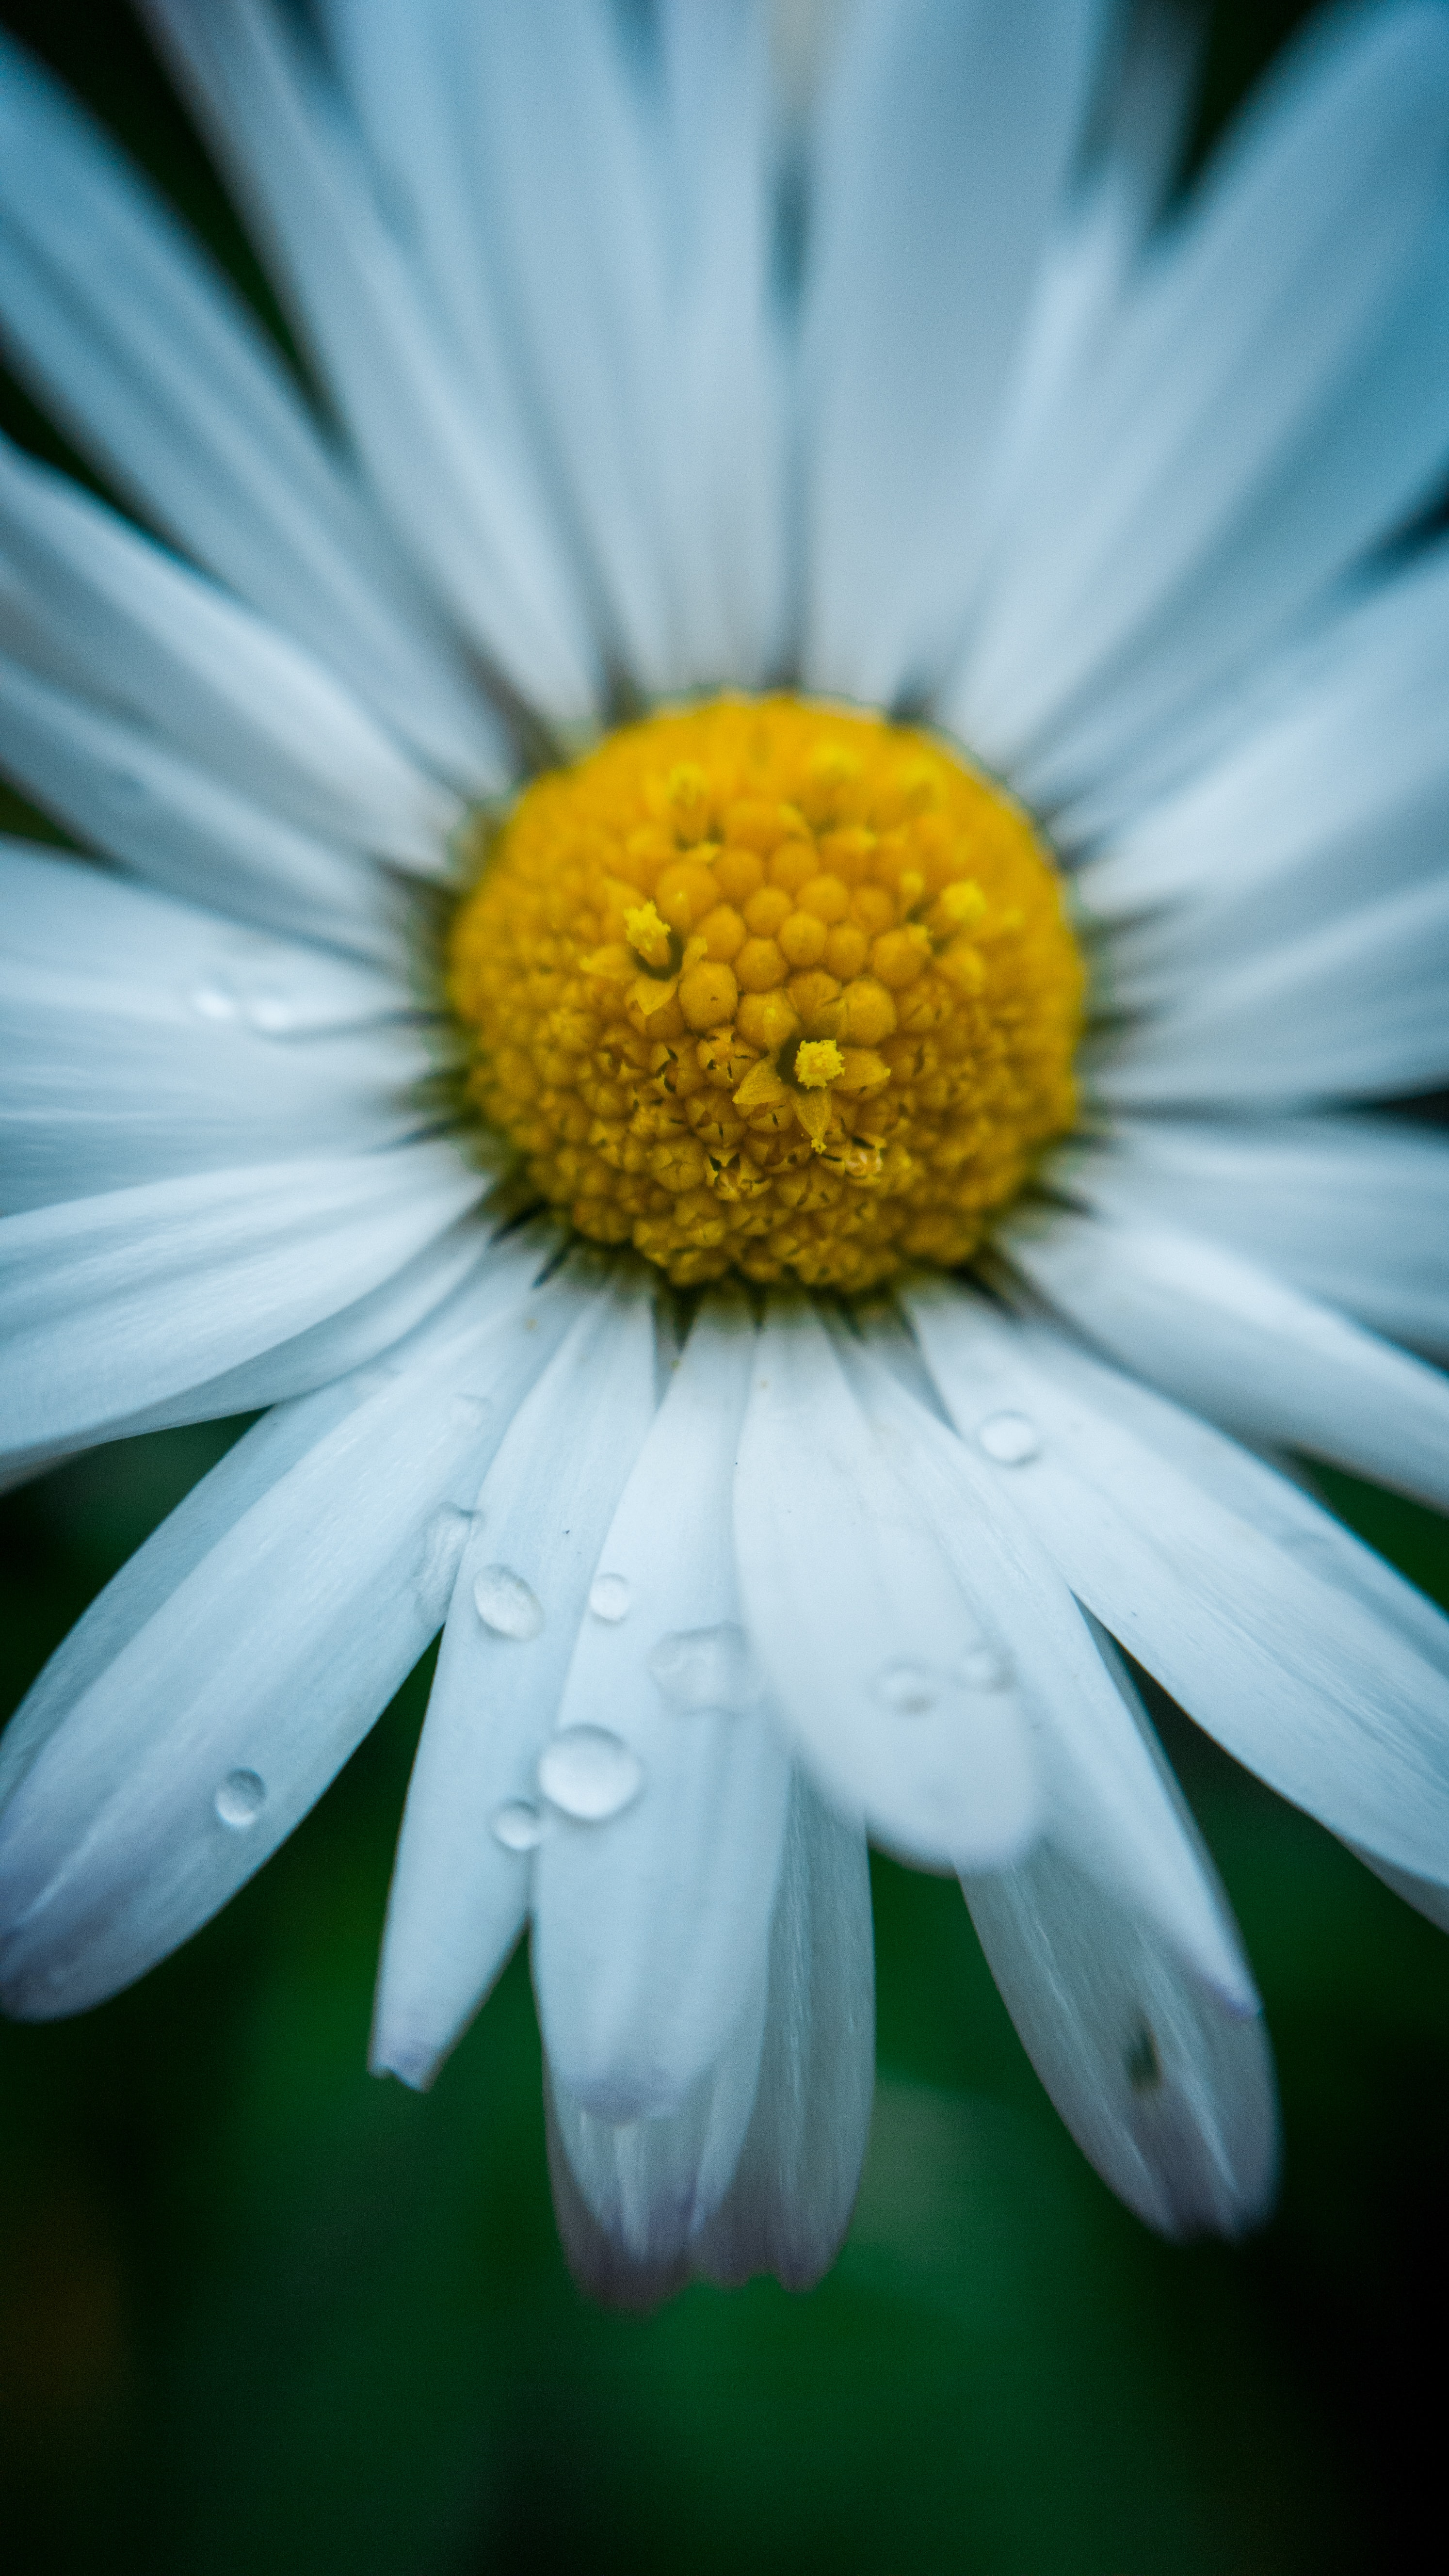 white daisy flower close-up photography